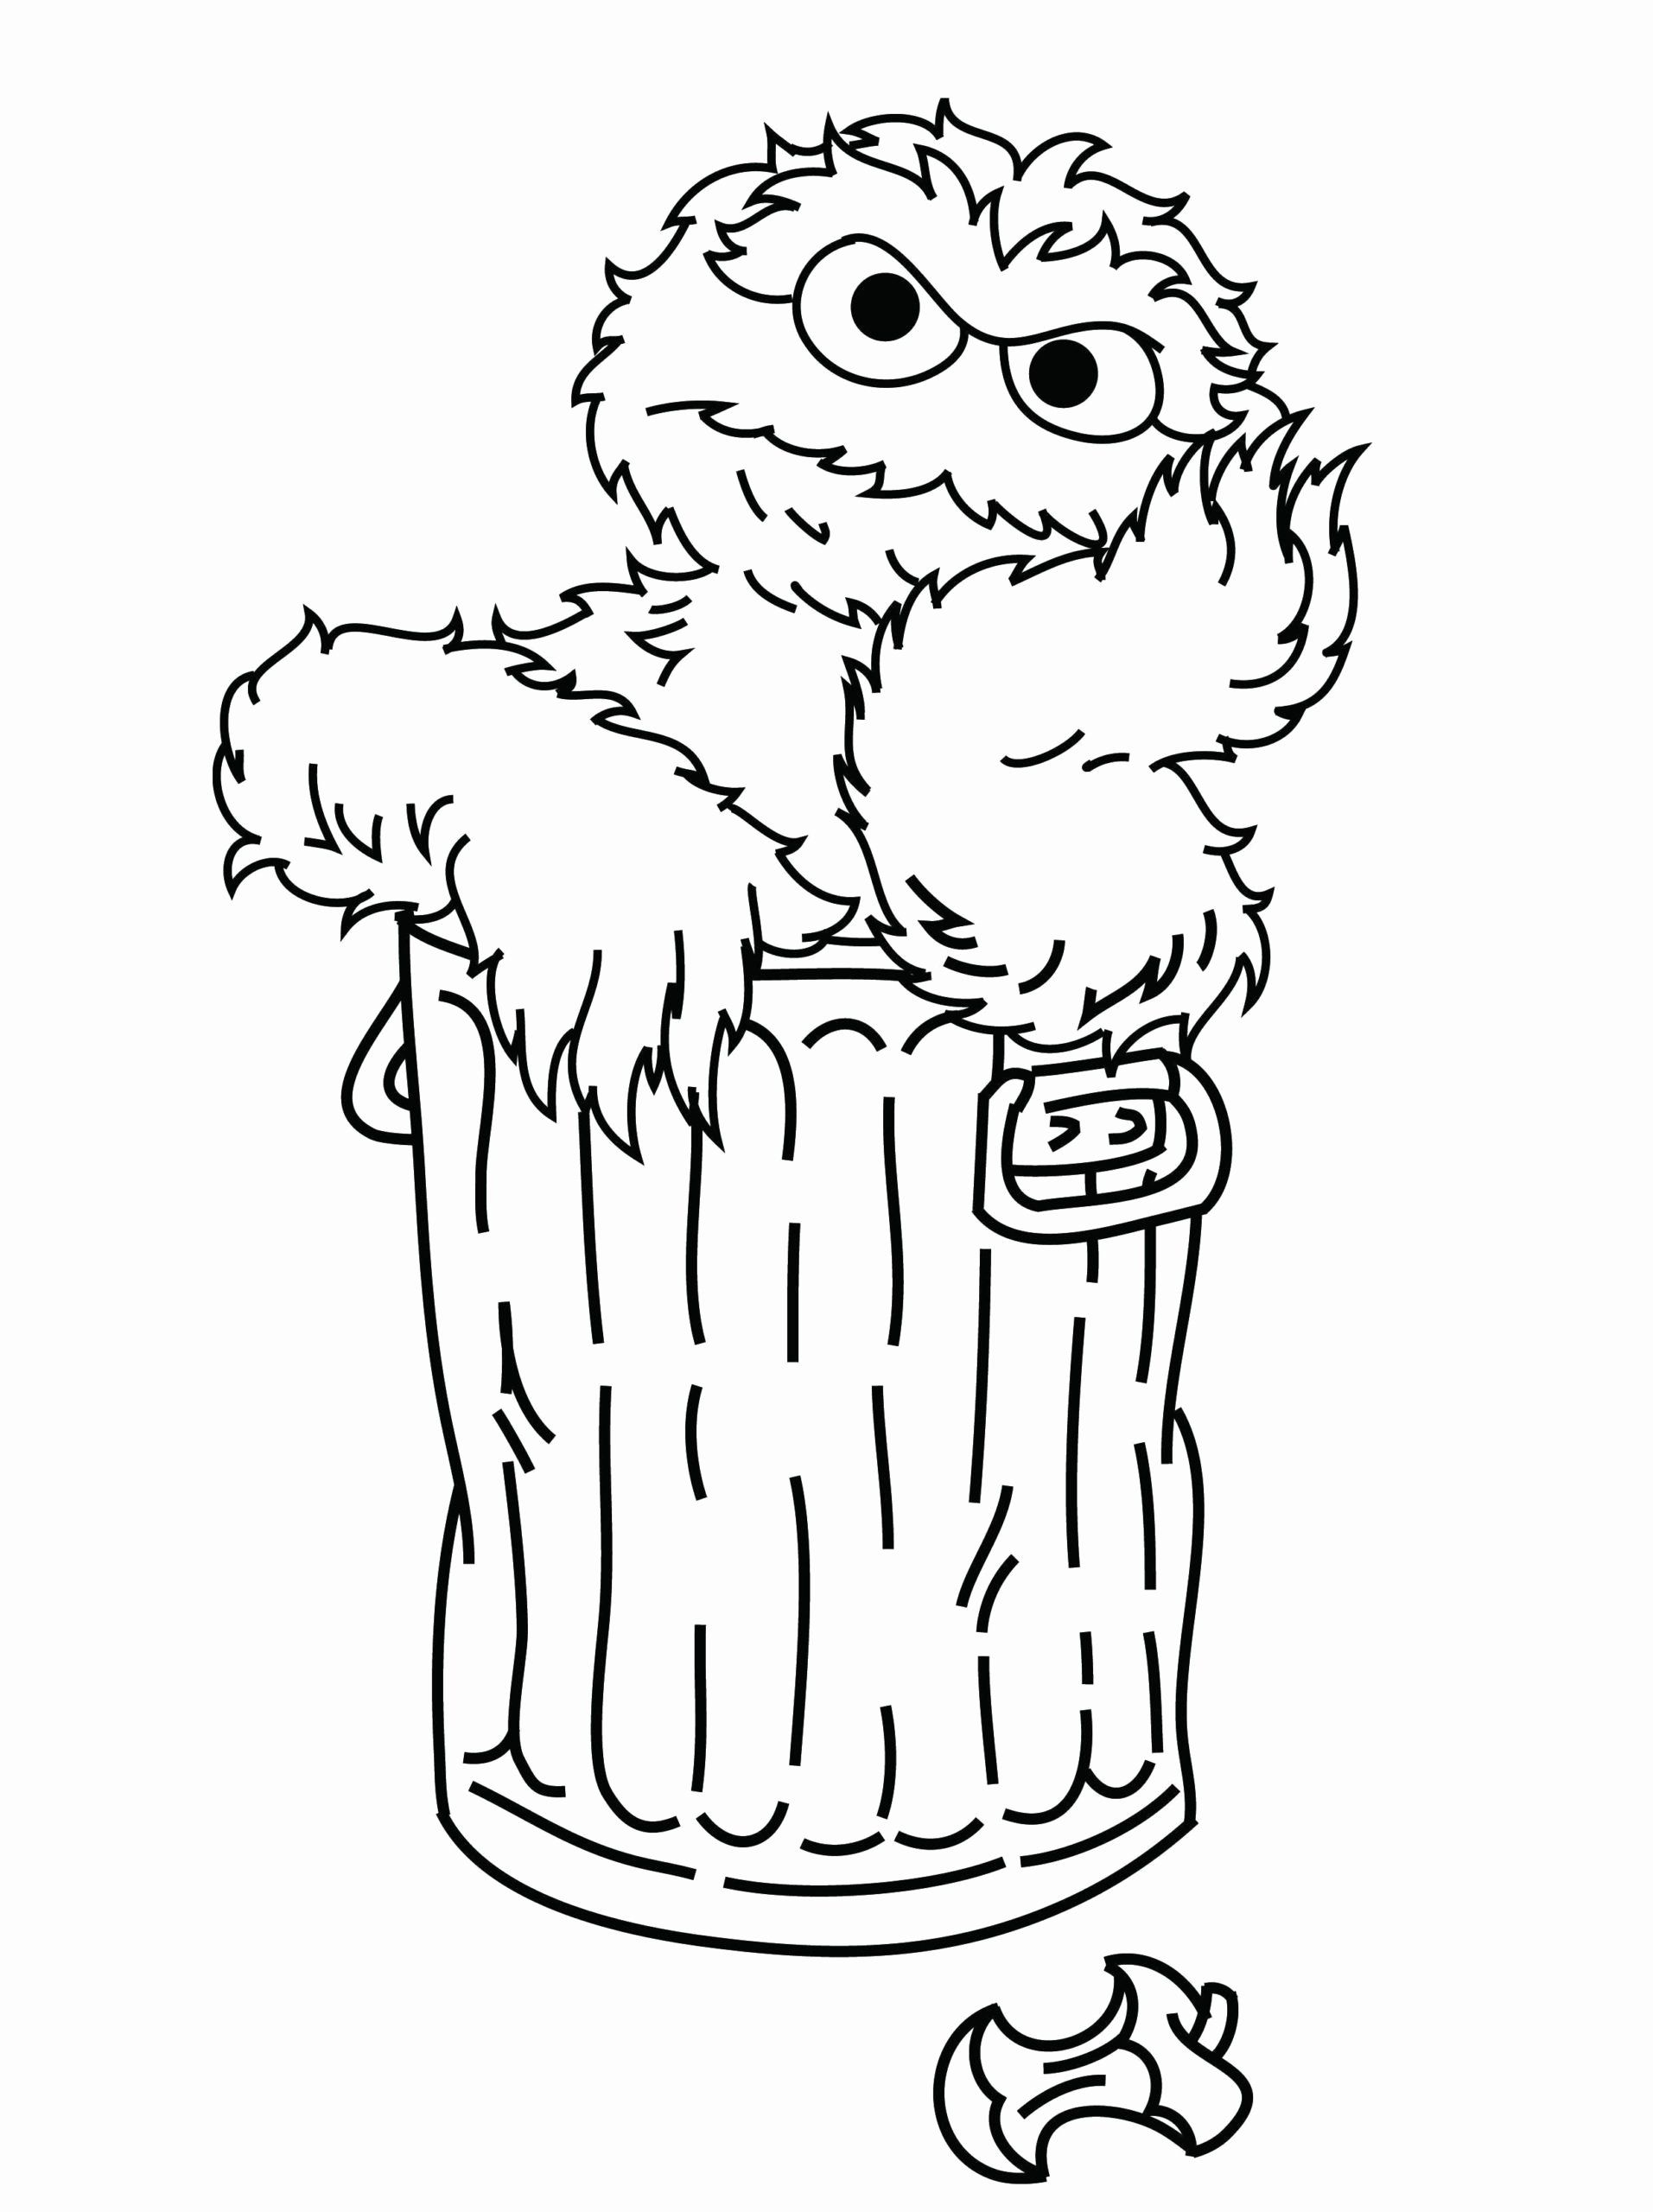 Sesame Street Printable Coloring Pages Beautiful Coloring